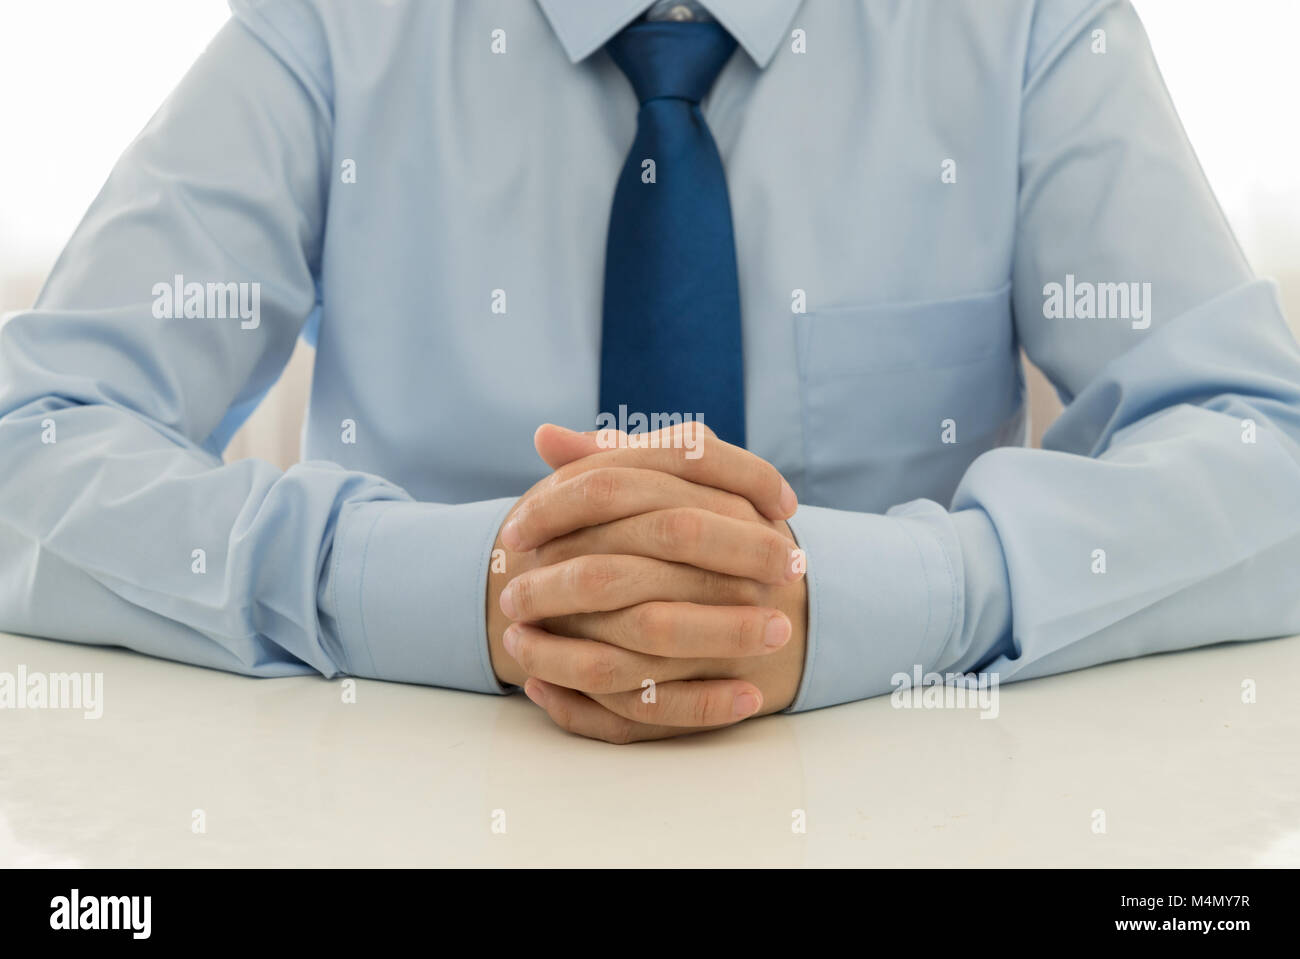 Employees are listening to suggestions or complaints from customers. - Stock Image